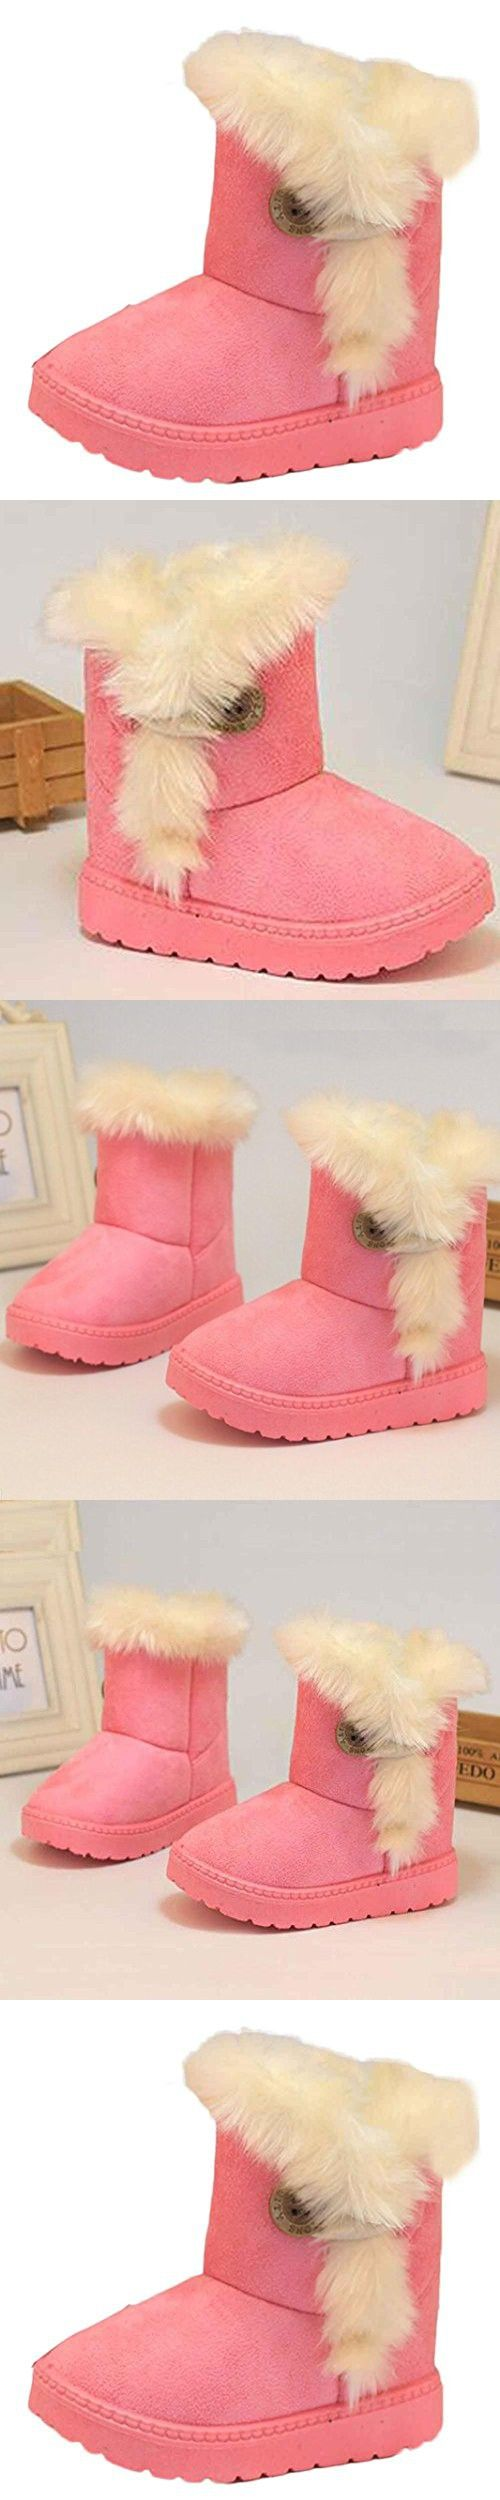 GBSELL Pretty Winter Baby Girls Toddler Snow Boots Warm Shoes (Pink, 1-2 Year)